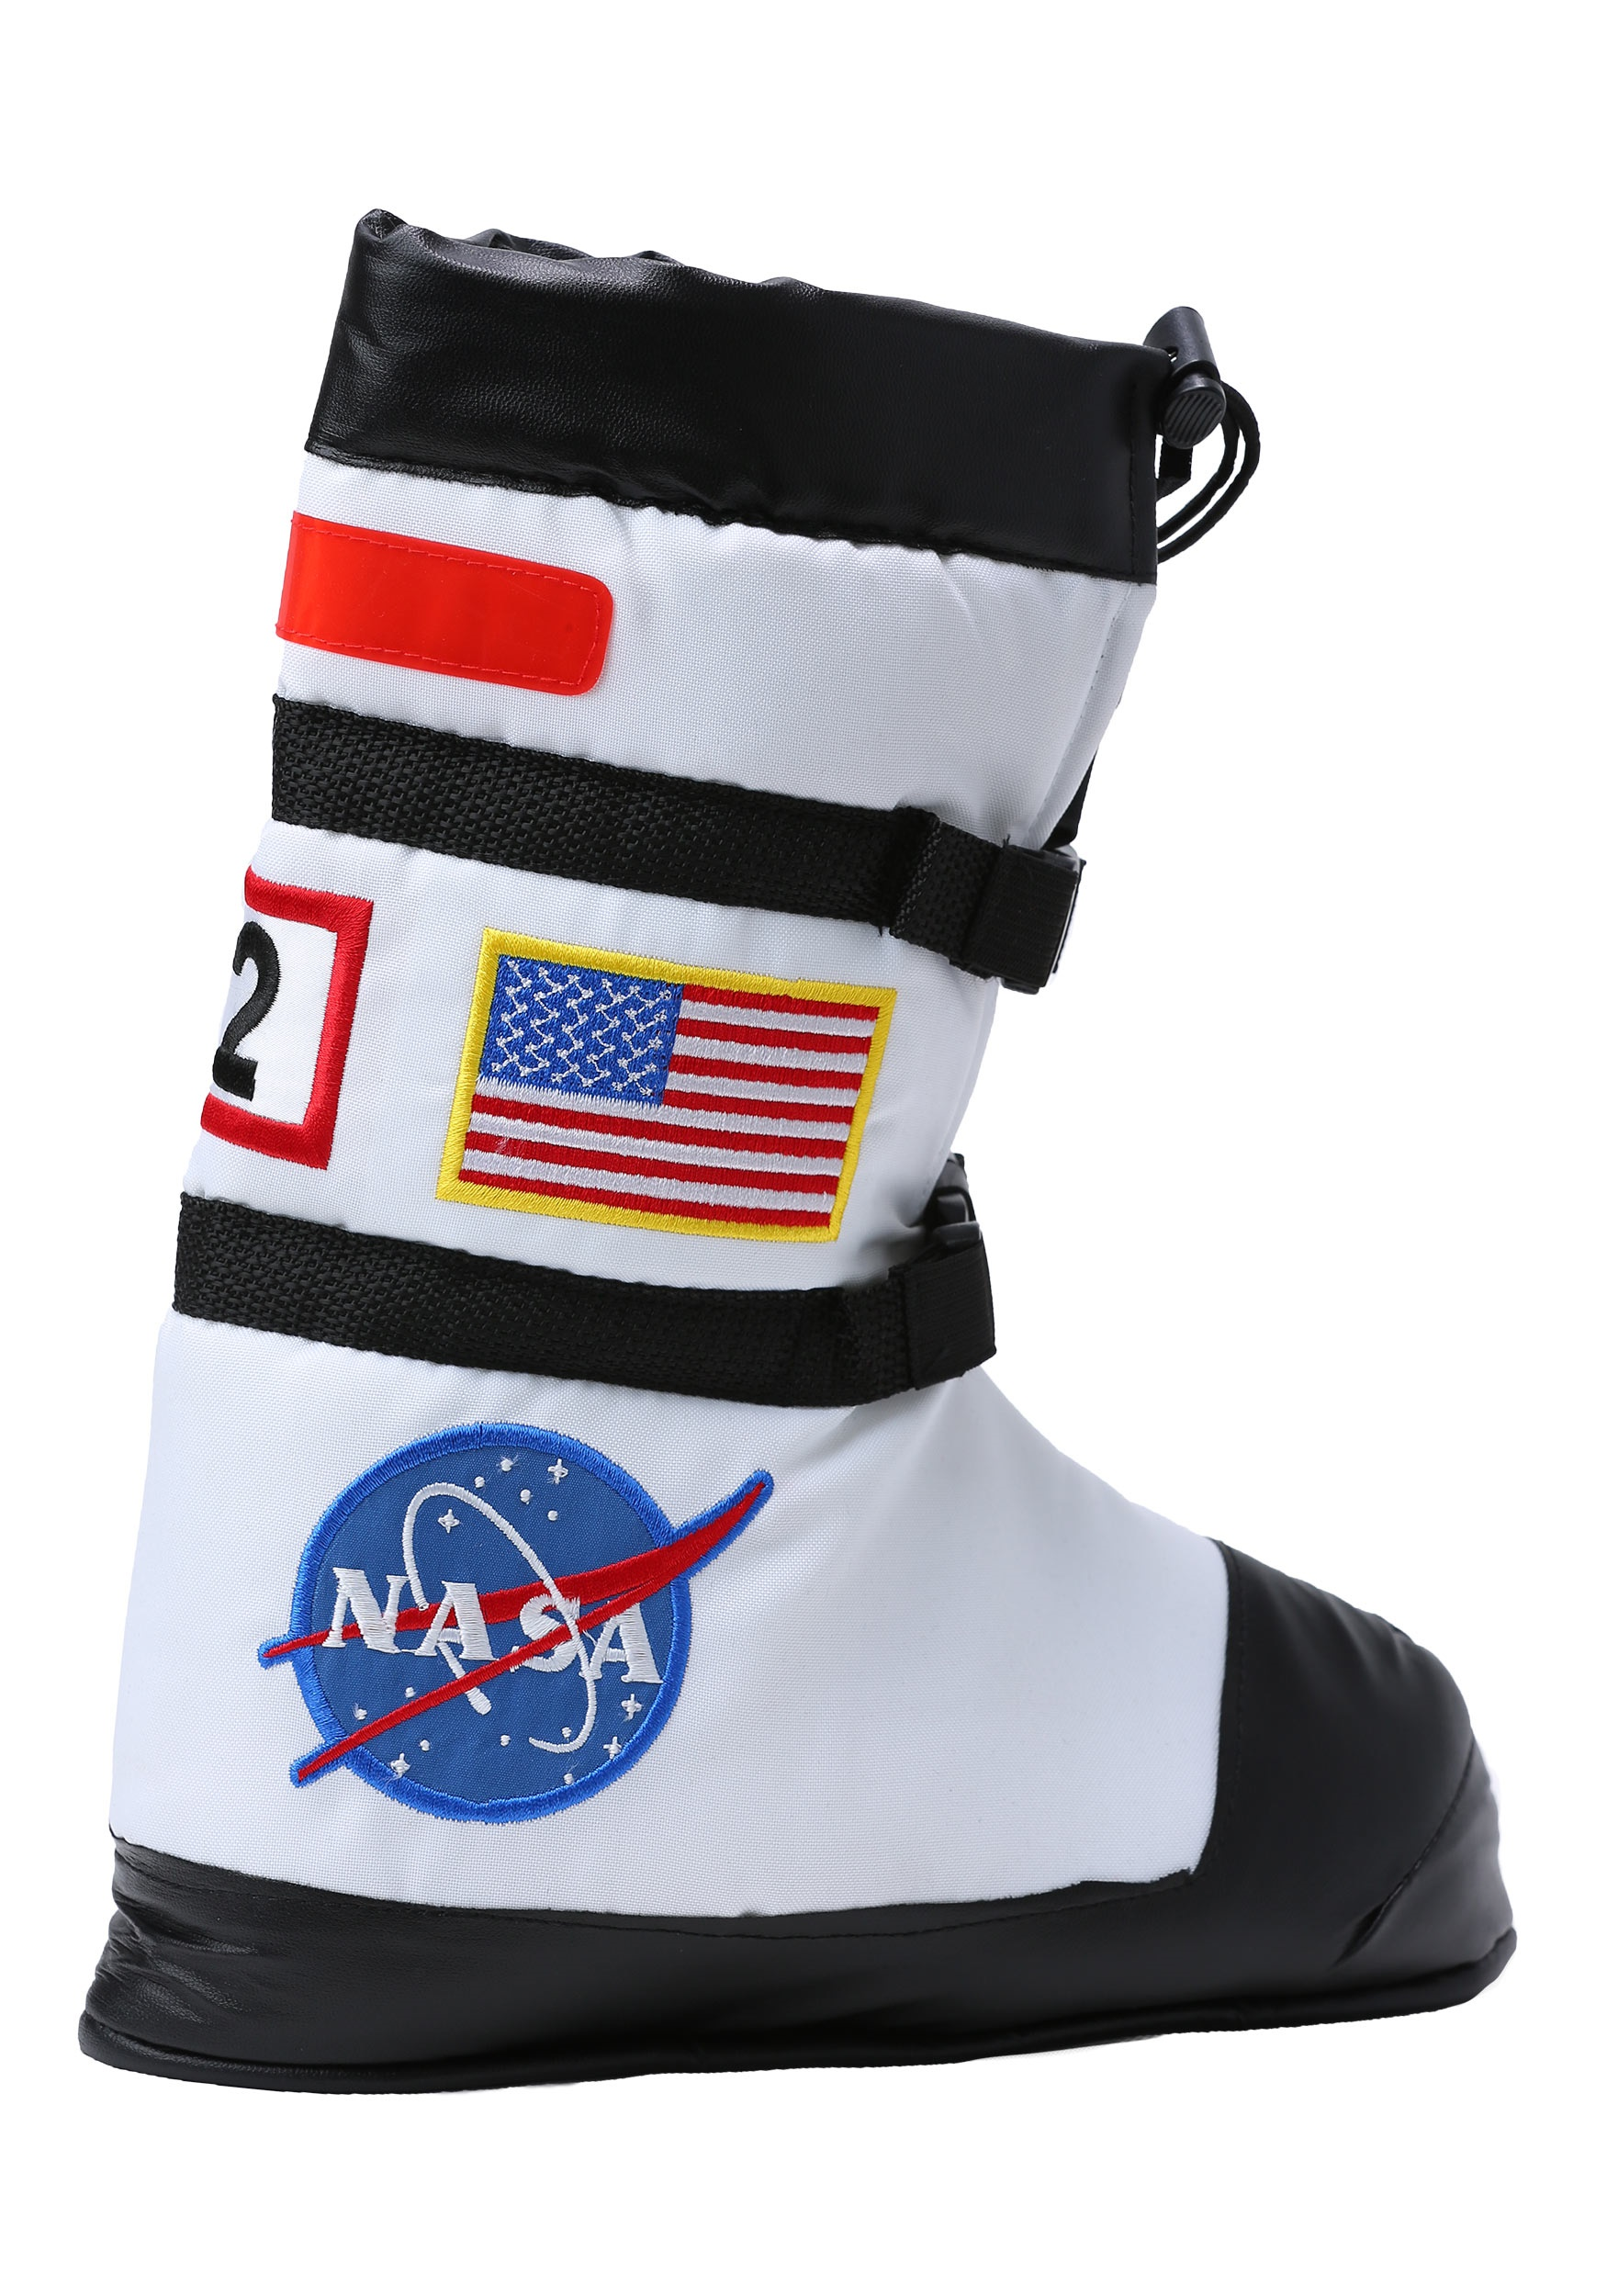 astronaut space boots - photo #2